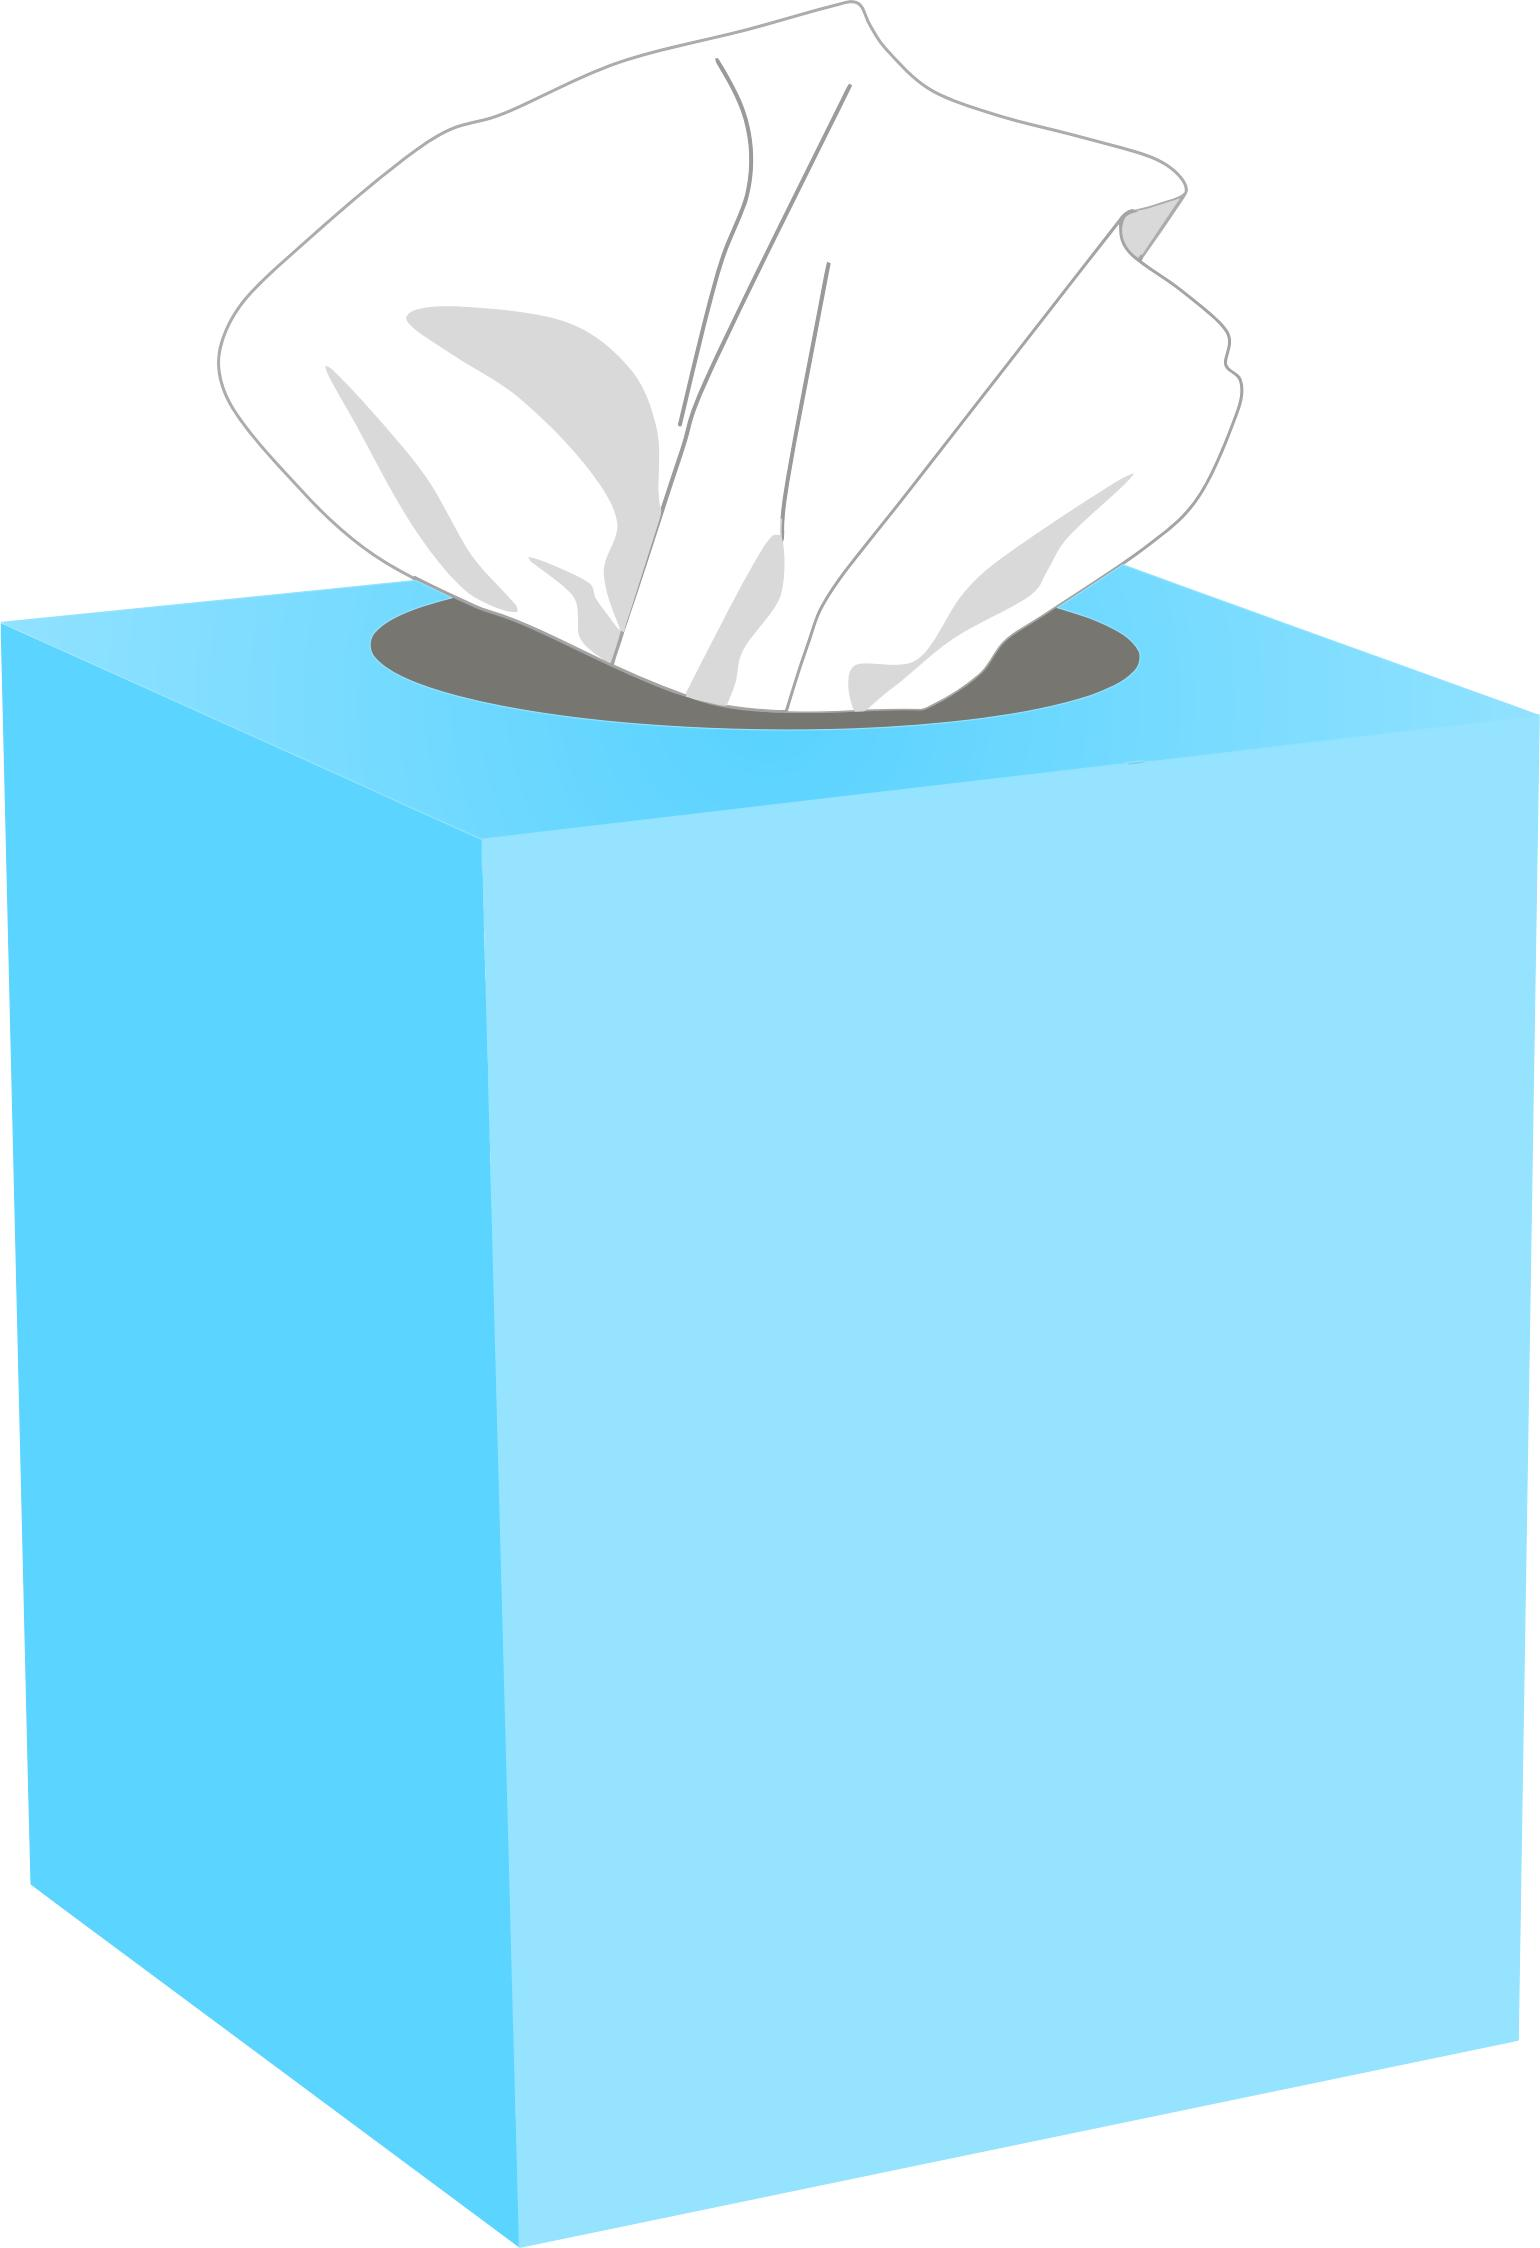 Of tissues icons png. Box clipart icon